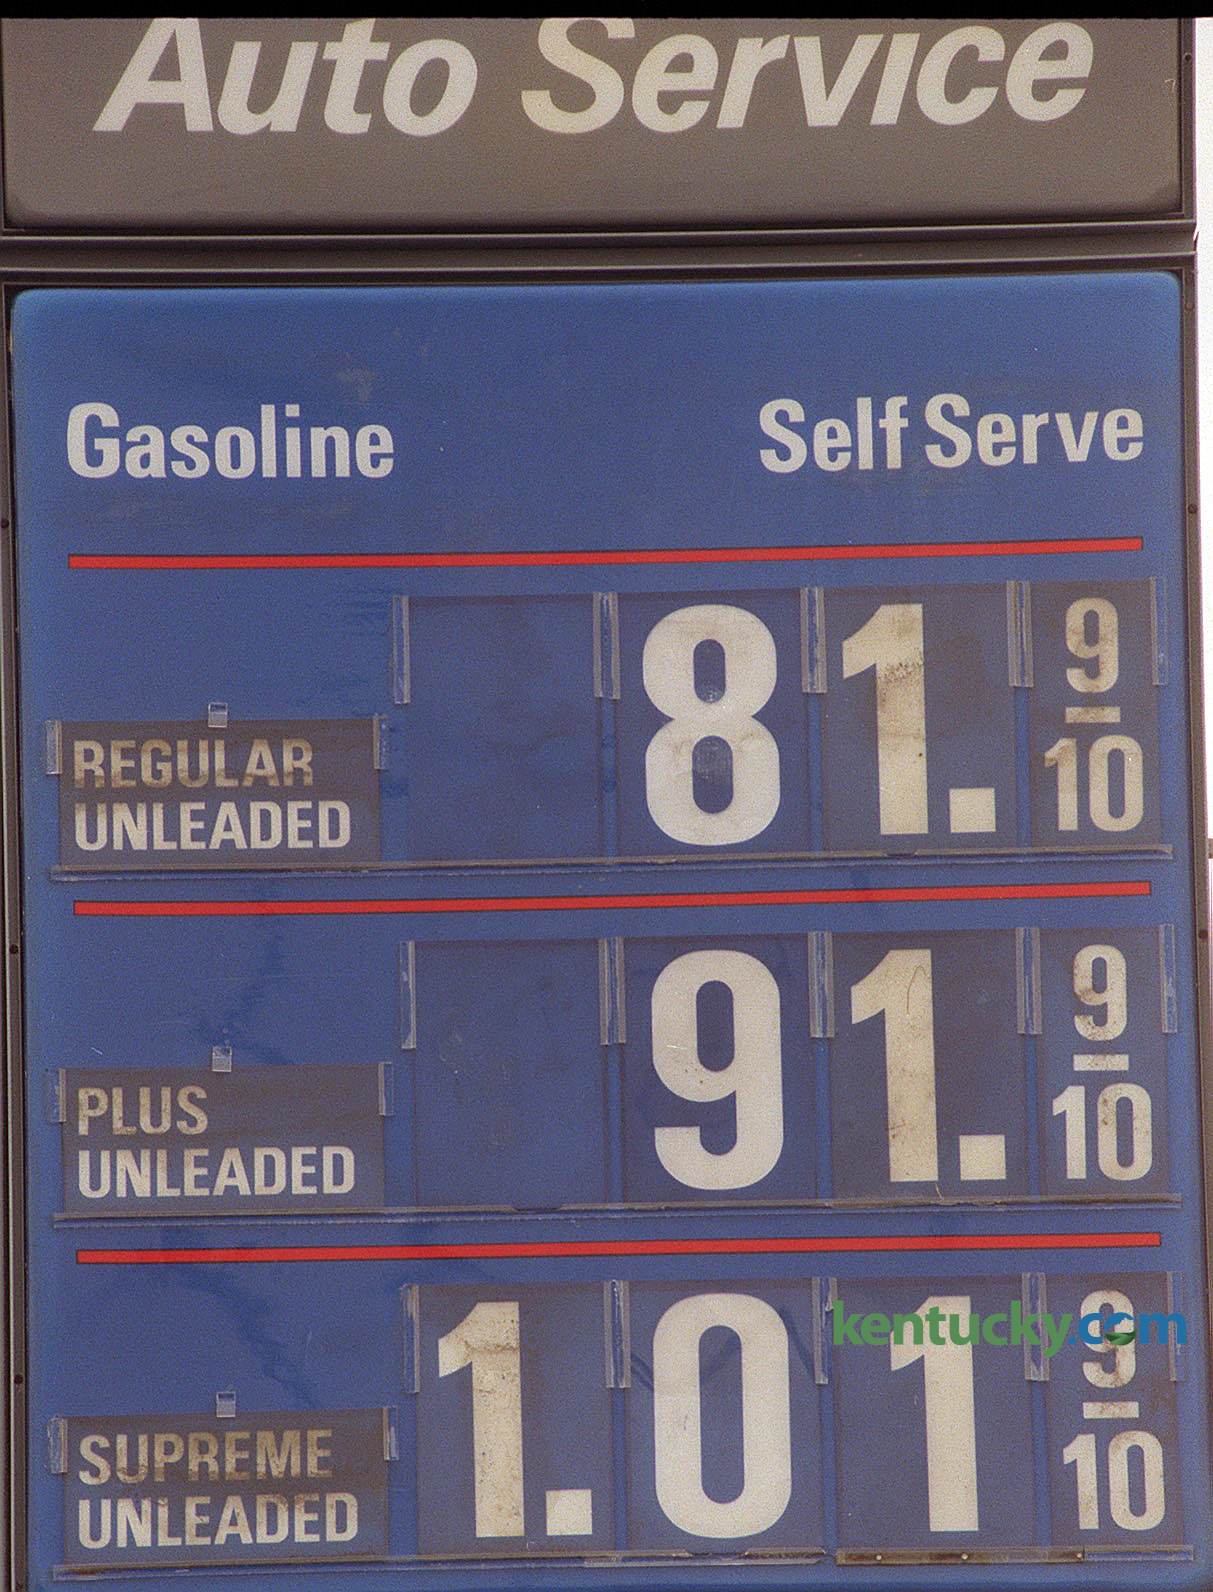 Gas prices photo